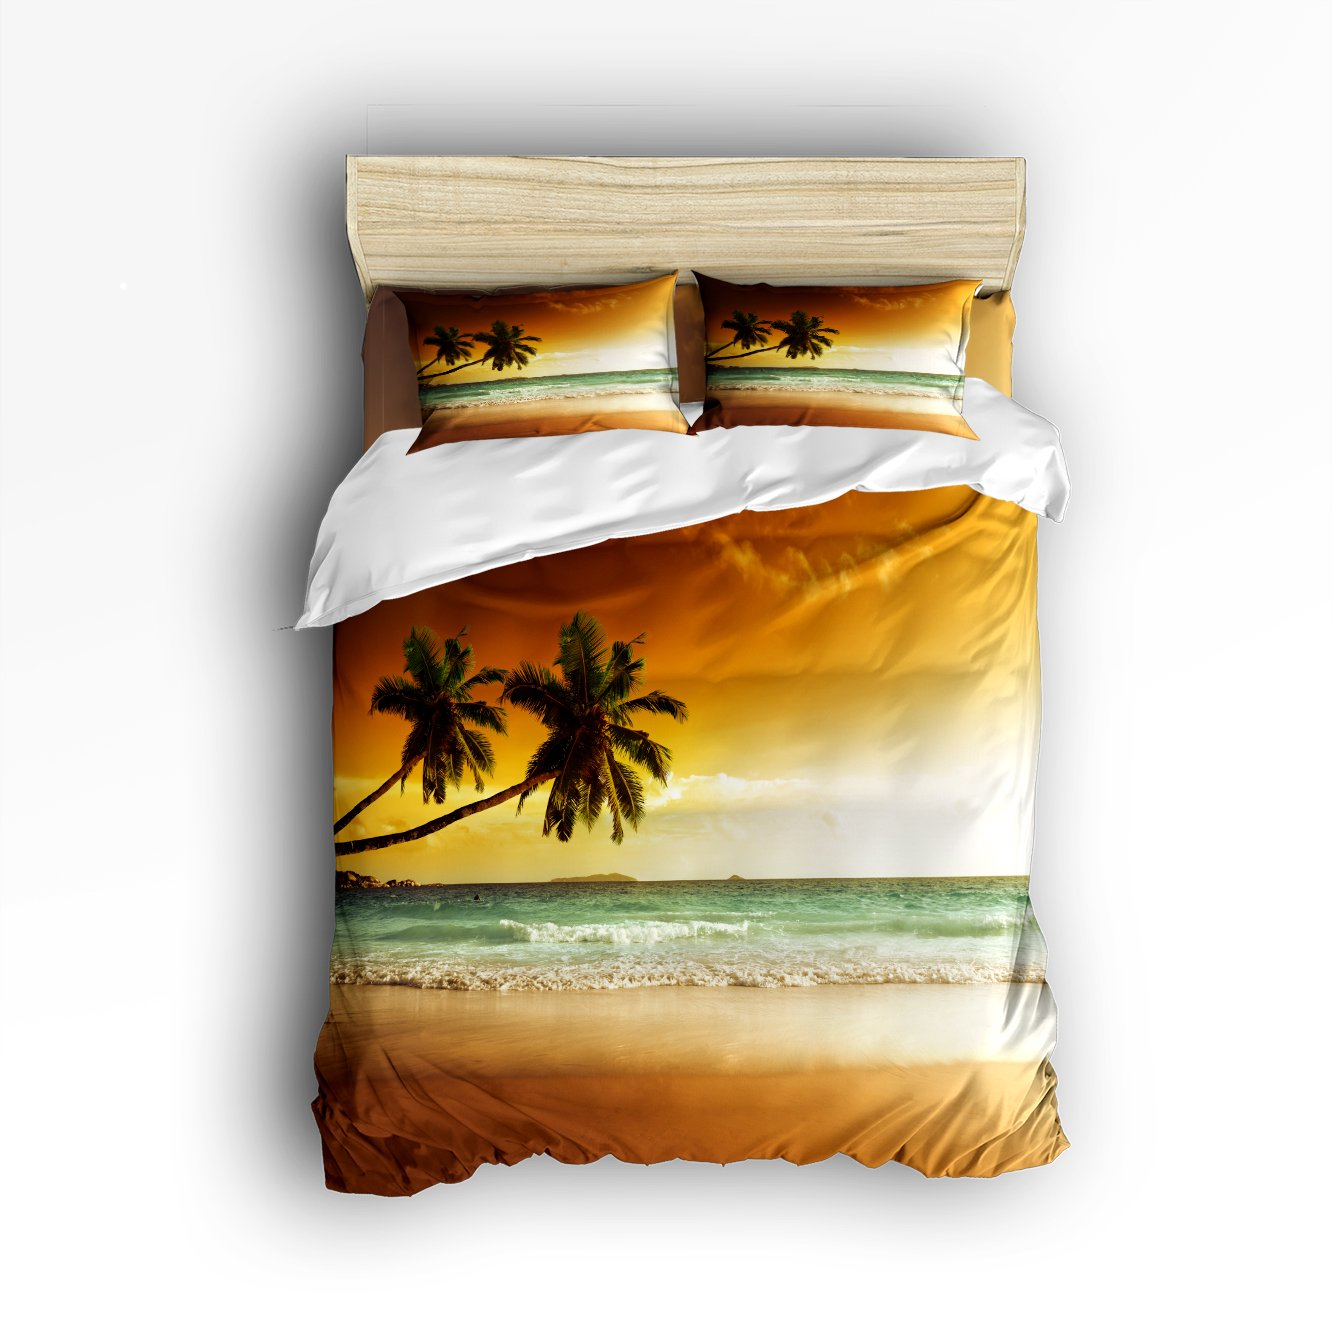 Libaoge 4 Piece Bed Sheets Set, 3D Print Palm Tree Sunset Beach Sea Scenery , 1 Flat Sheet 1 Duvet Cover and 2 Pillow Cases